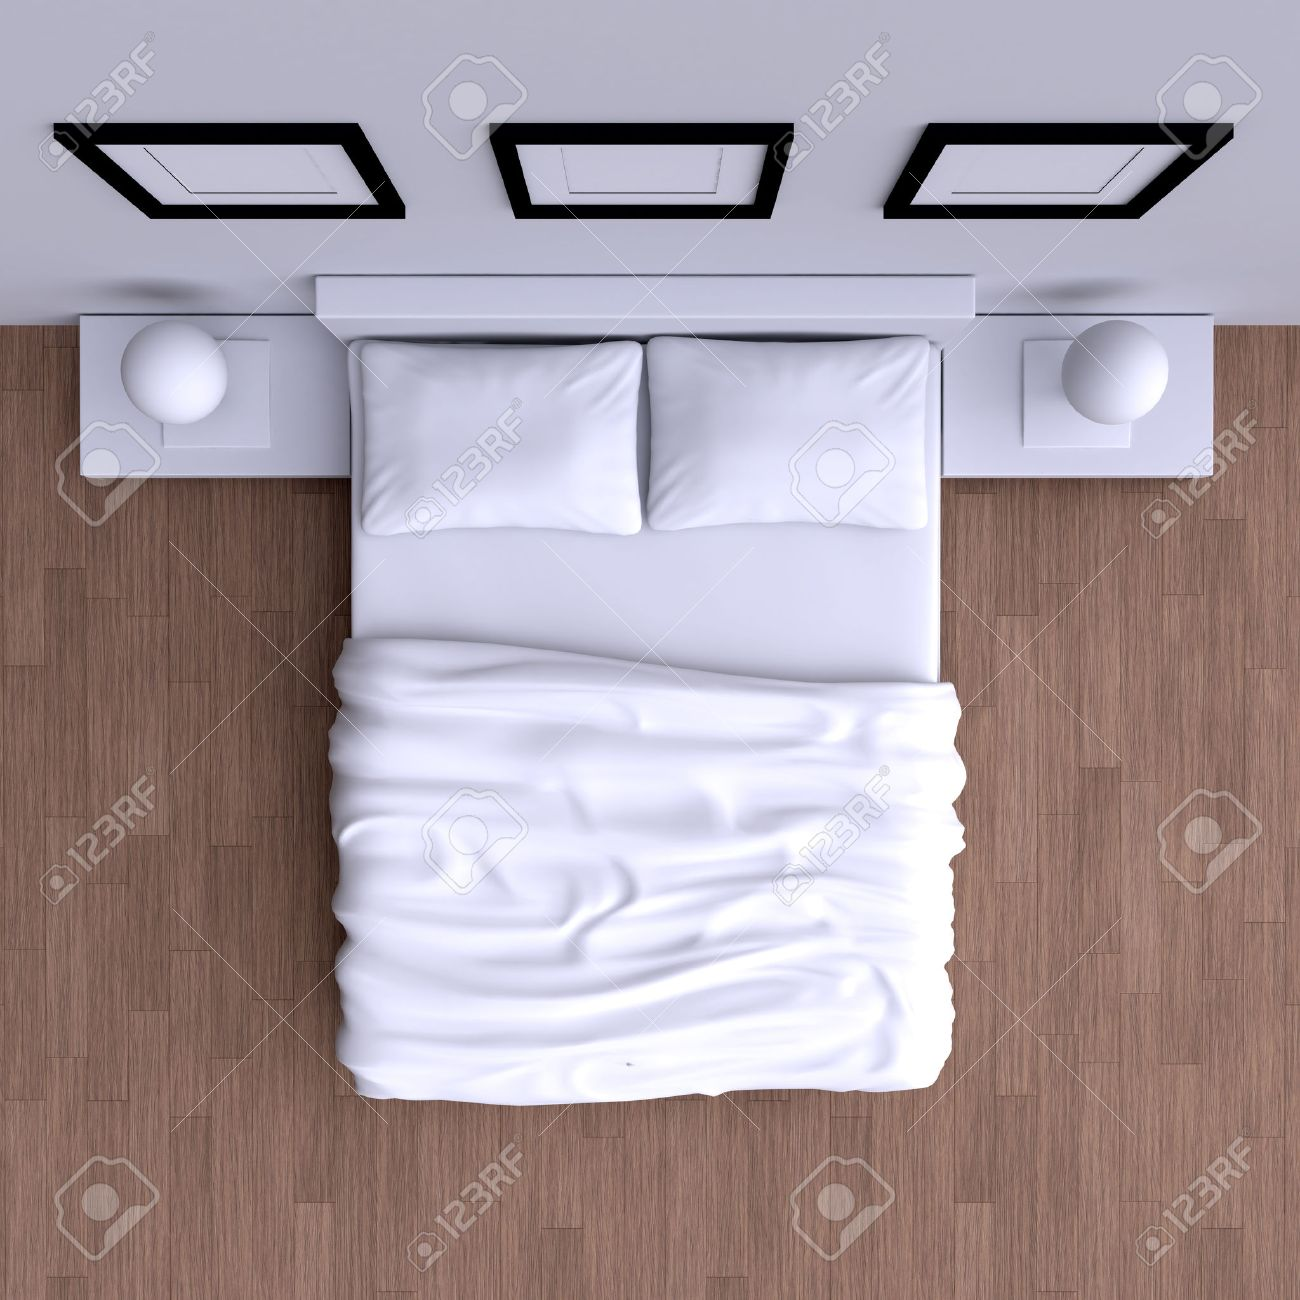 Single bedroom top view - One Bedroom Bed With Pillows And A Blanket In The Corner Room 3d Illustration